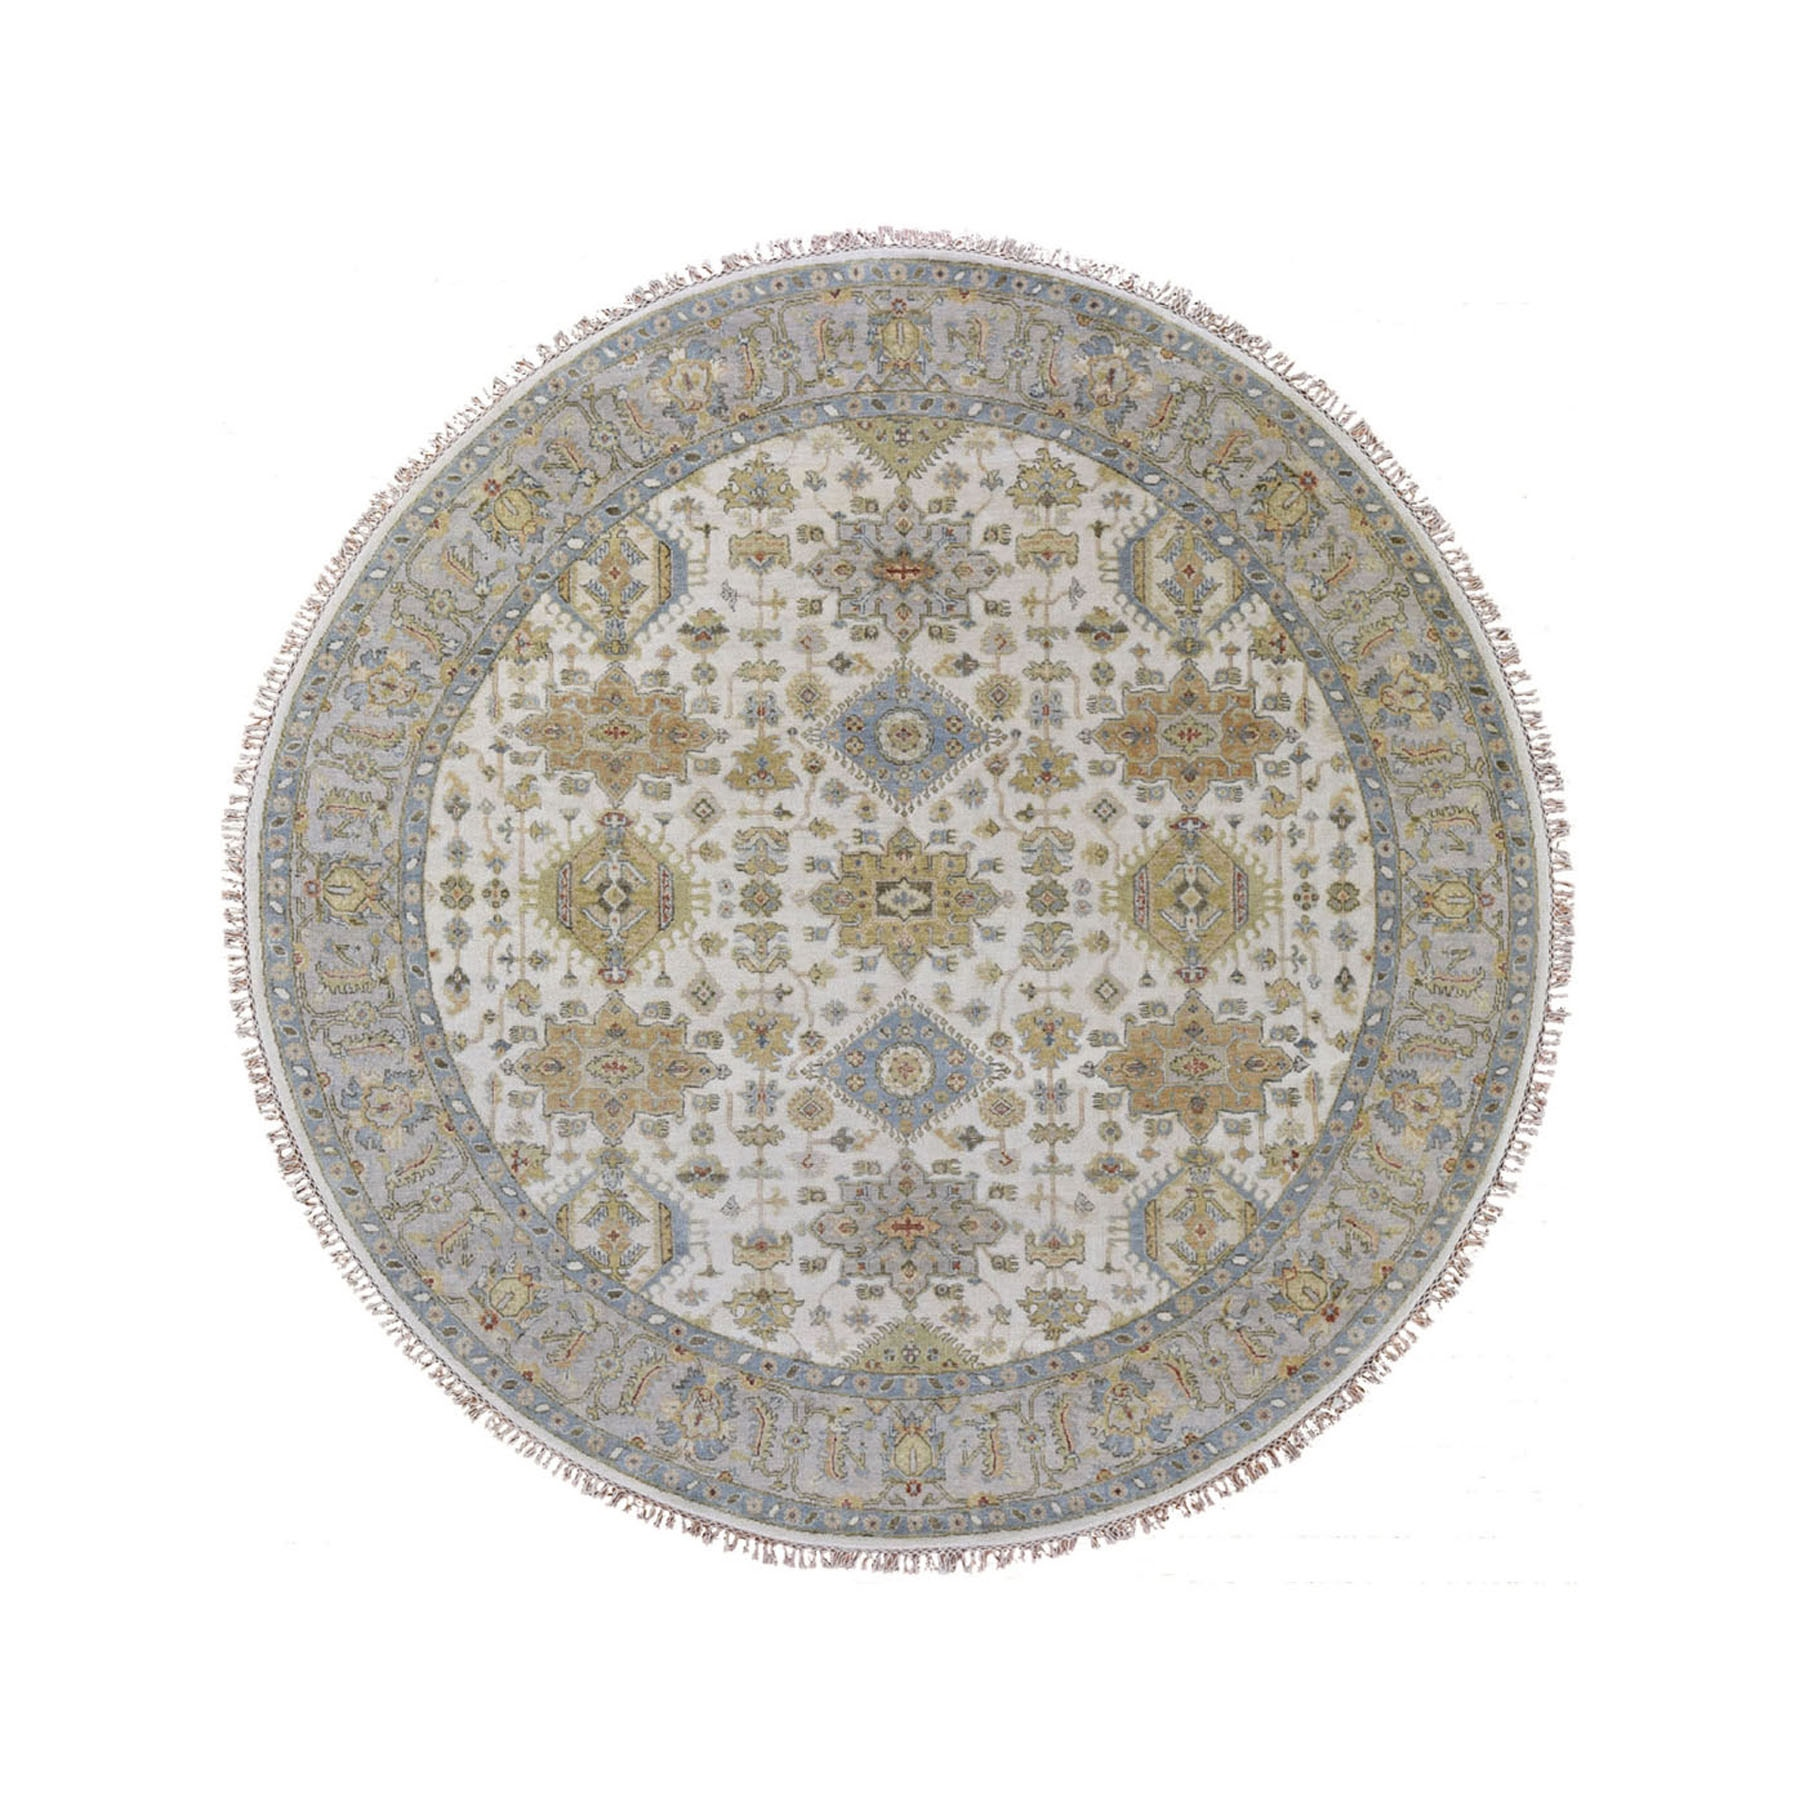 Heriz-Hand-Knotted-Rug-244315